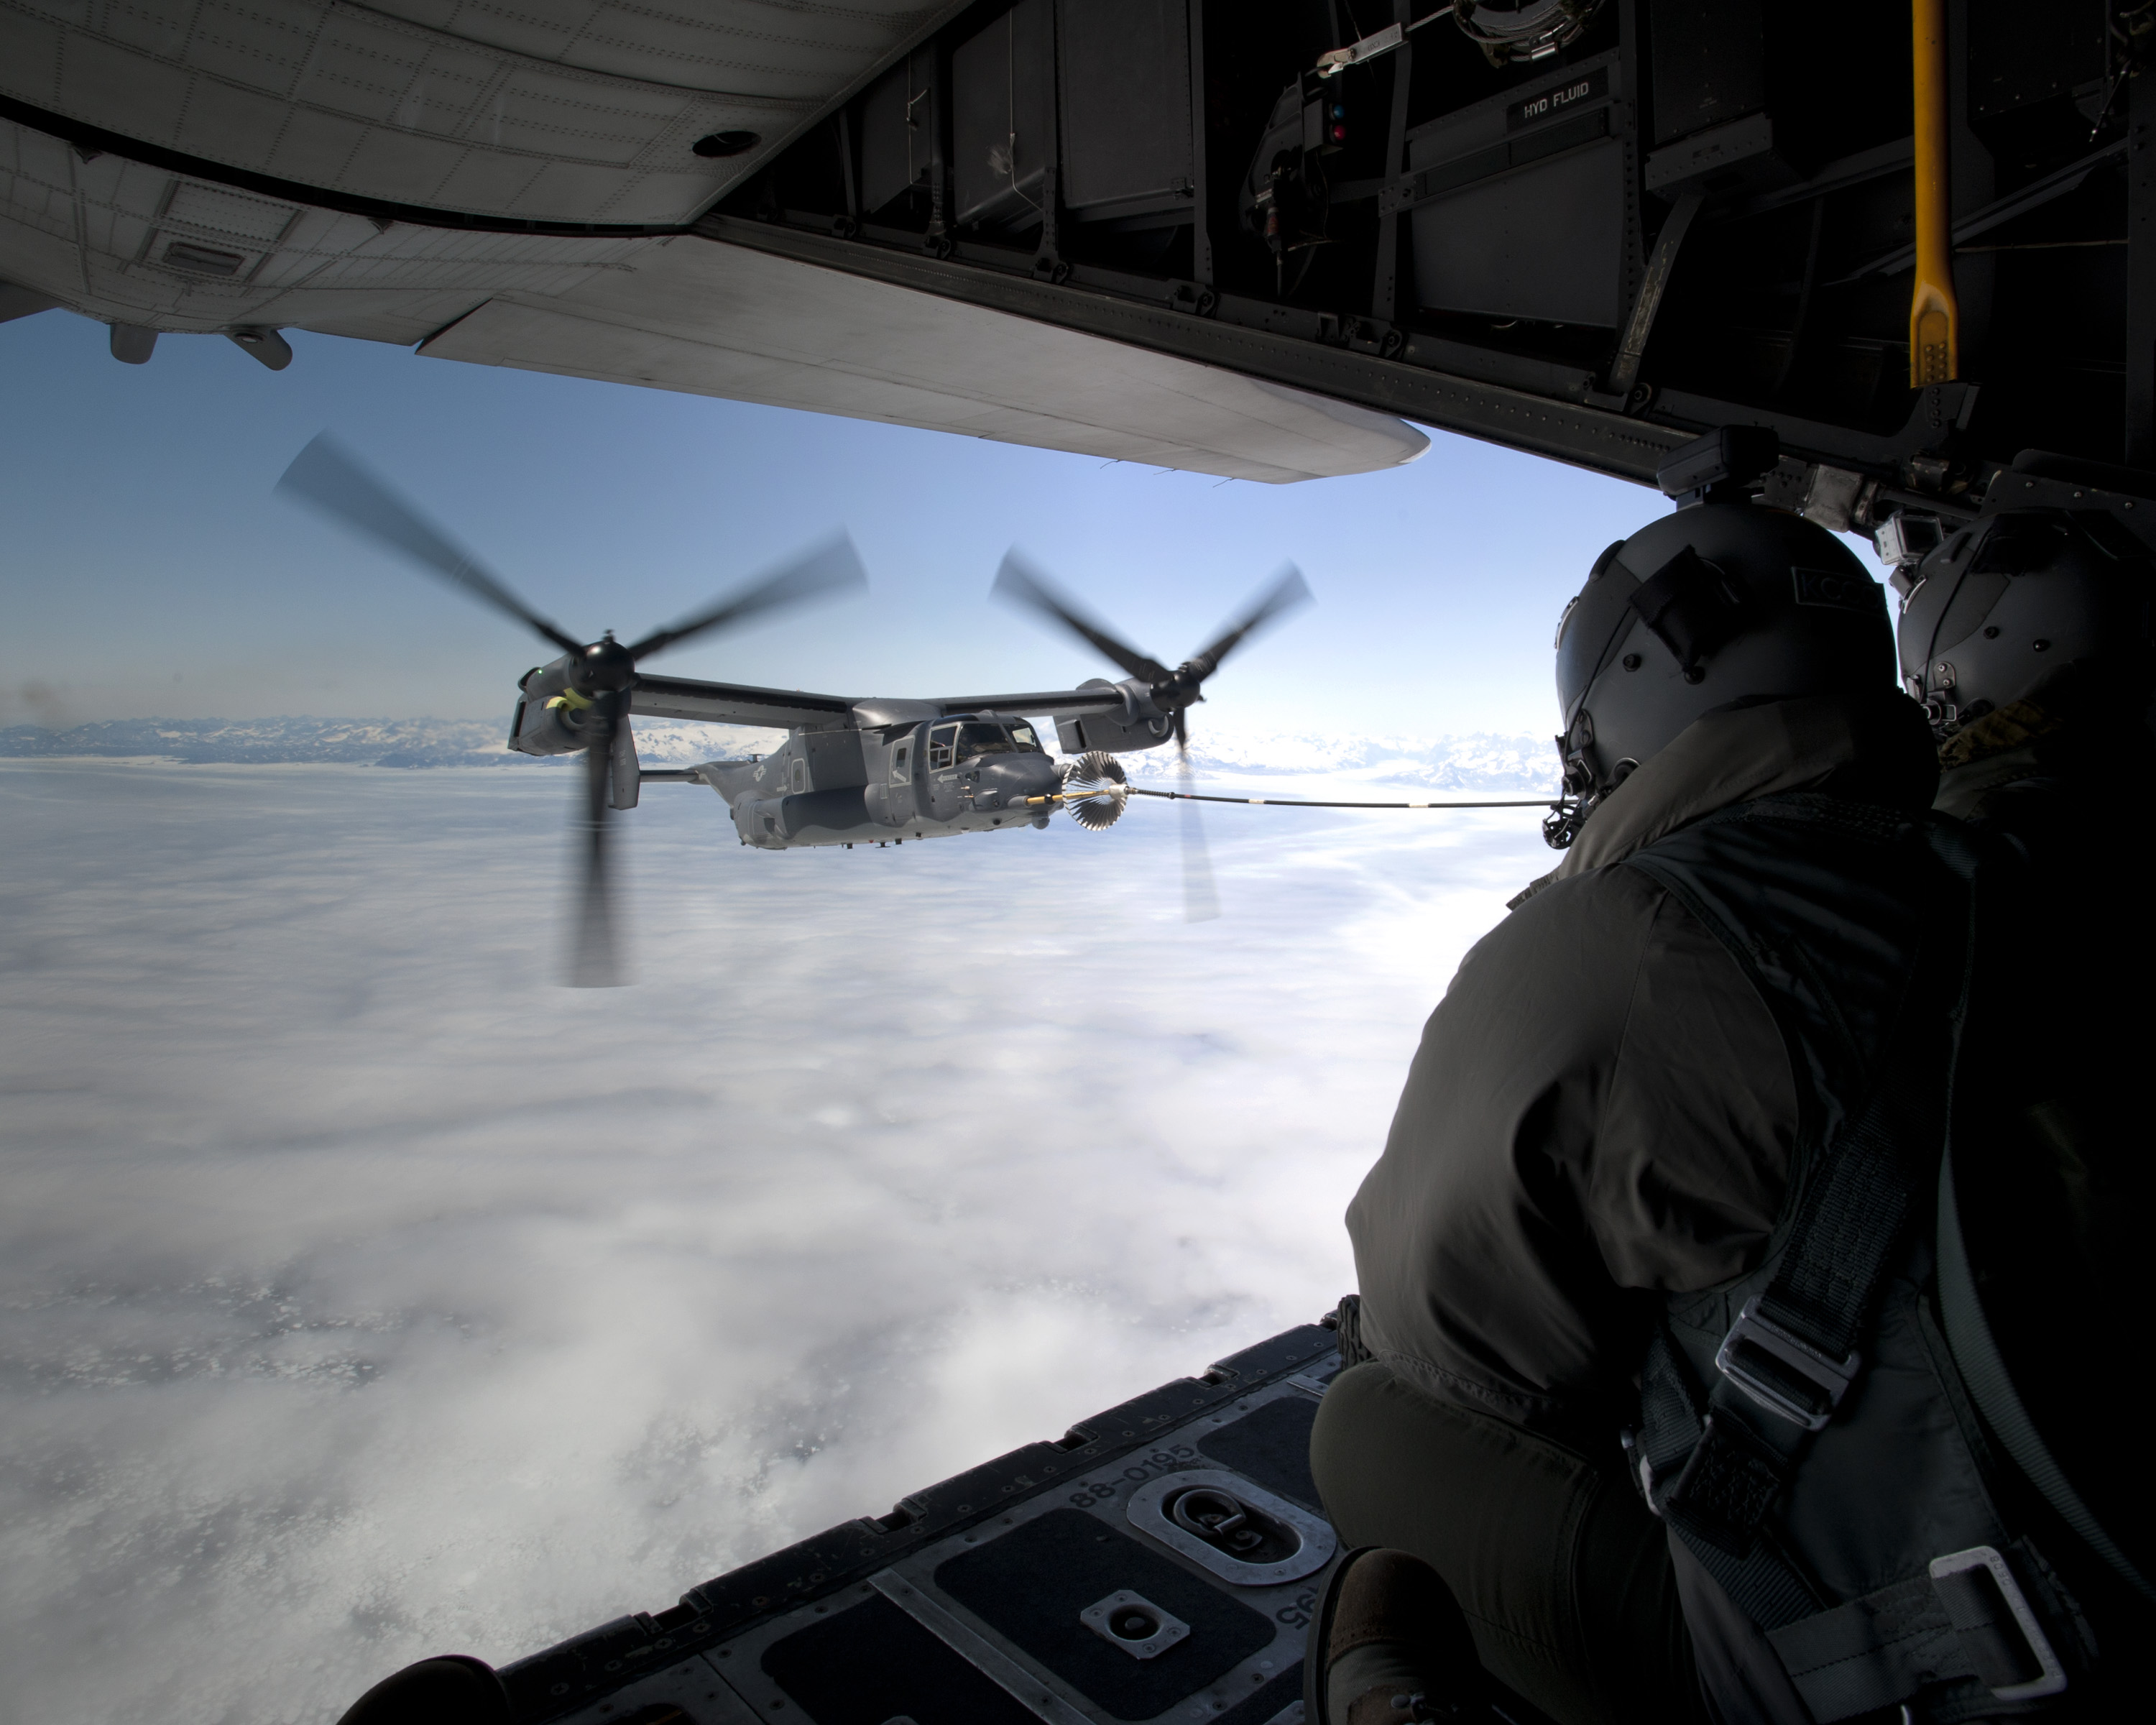 A 352nd Special Operations Group CV-22 refueling from one of the squadrons MC-130s. (USAF photo)